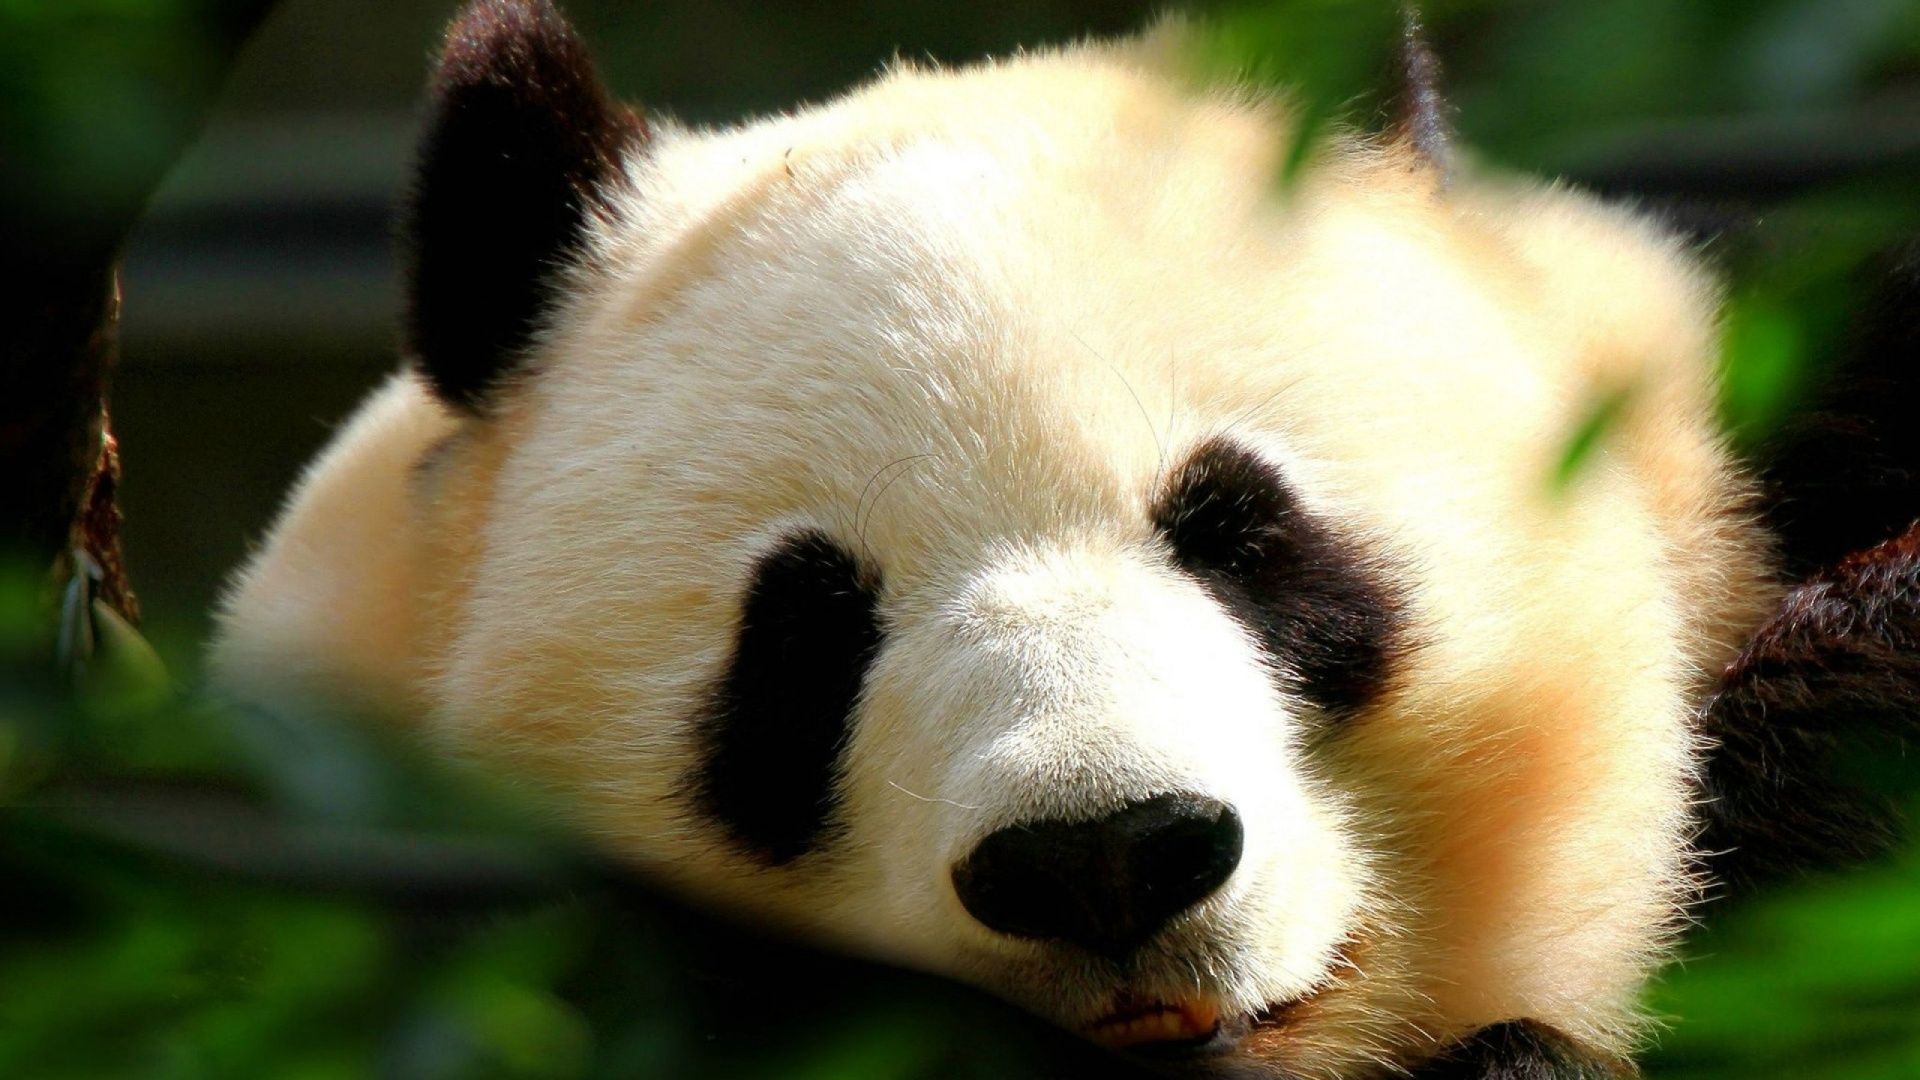 panda pictures hd wallpapers - photo #21